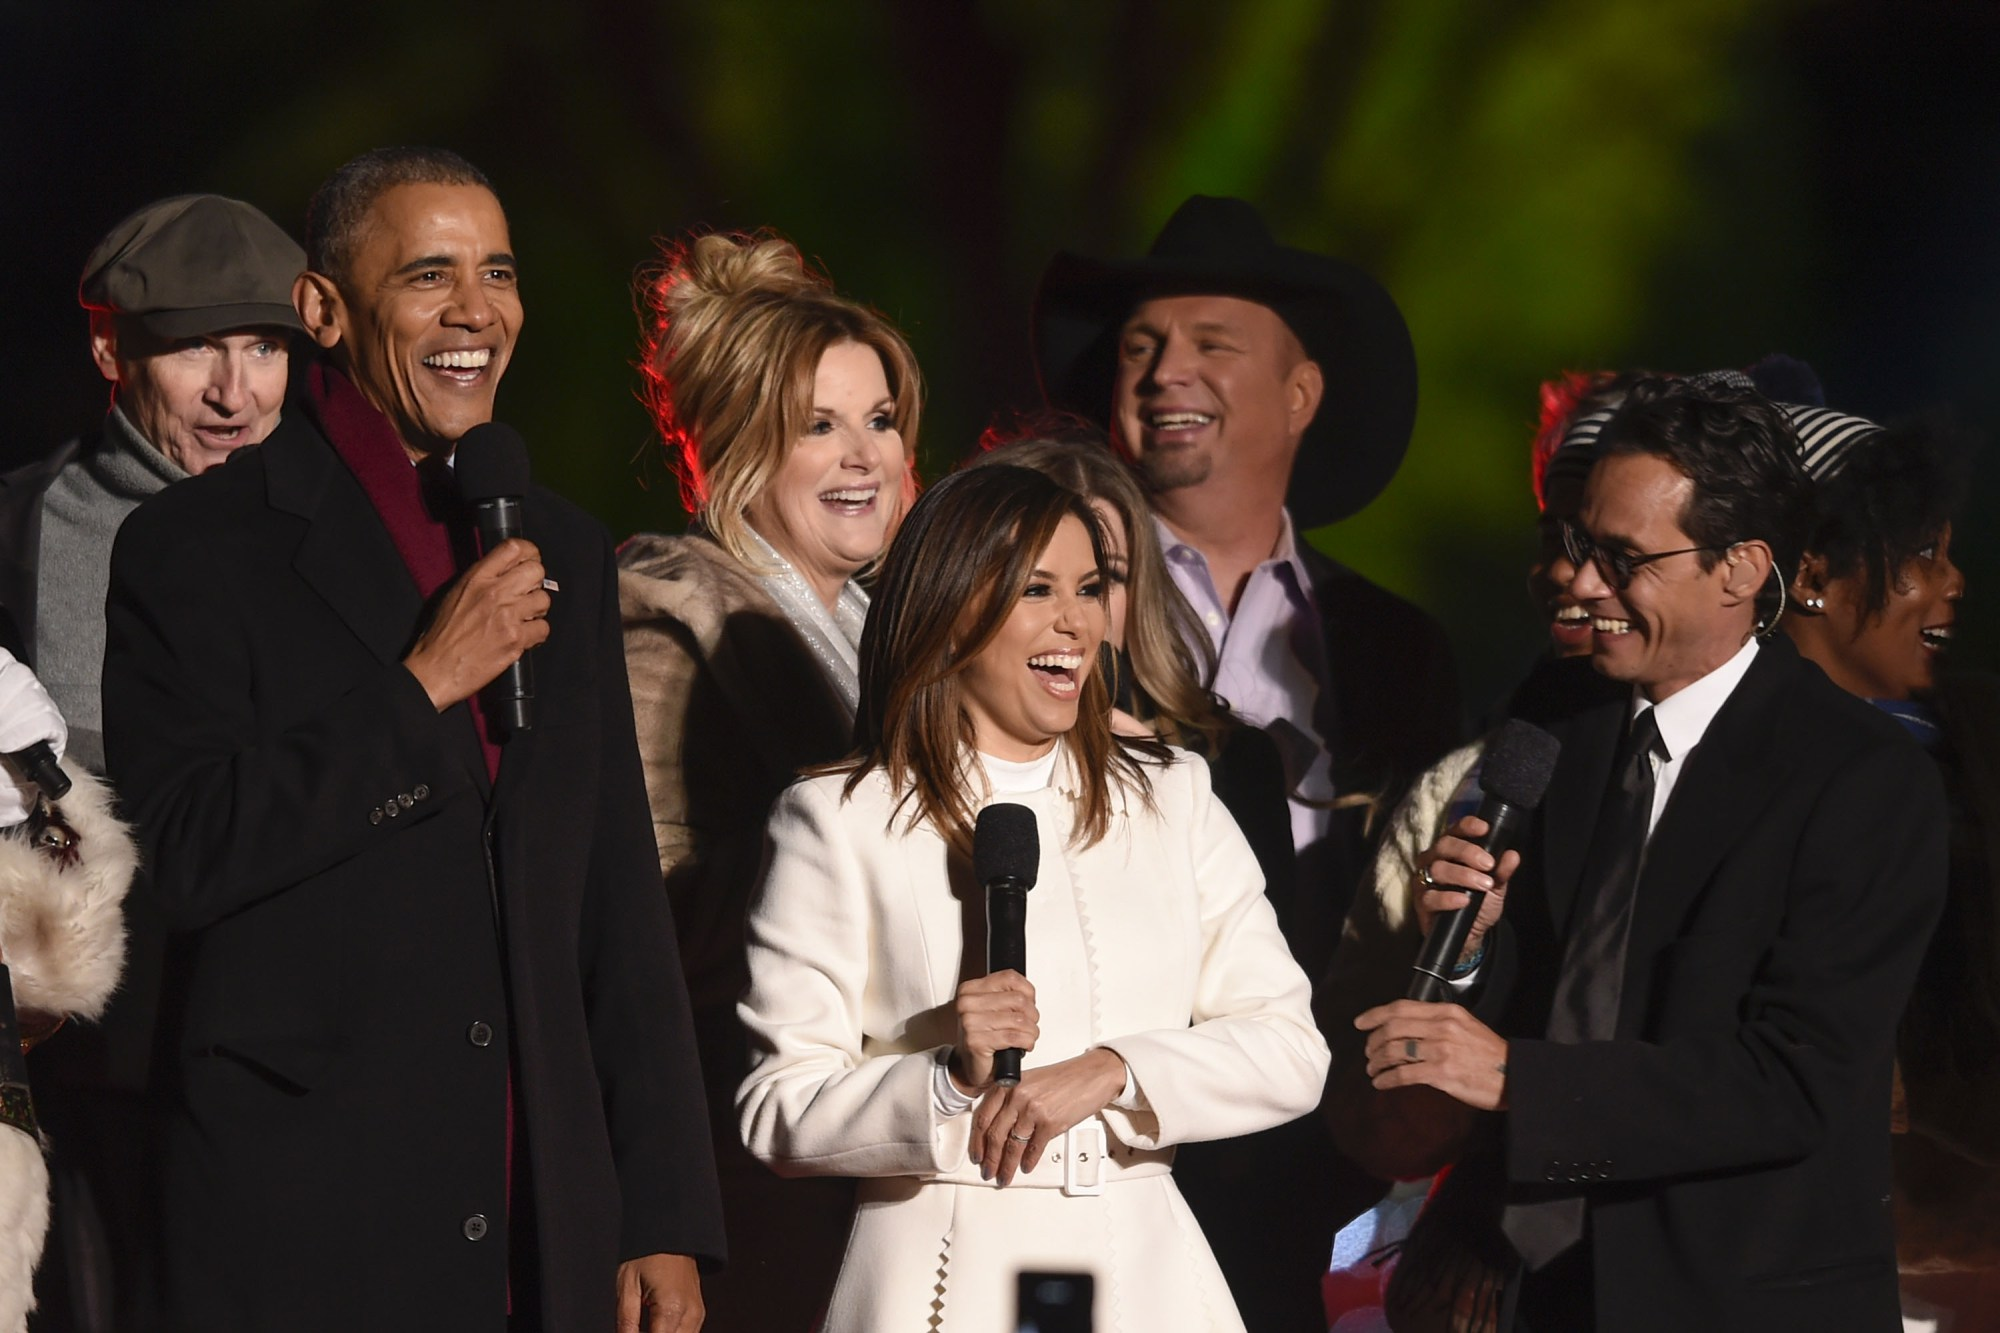 Eva longoria And Marc Anthony Help Light Obama's Last Christmas Tree As The First Family